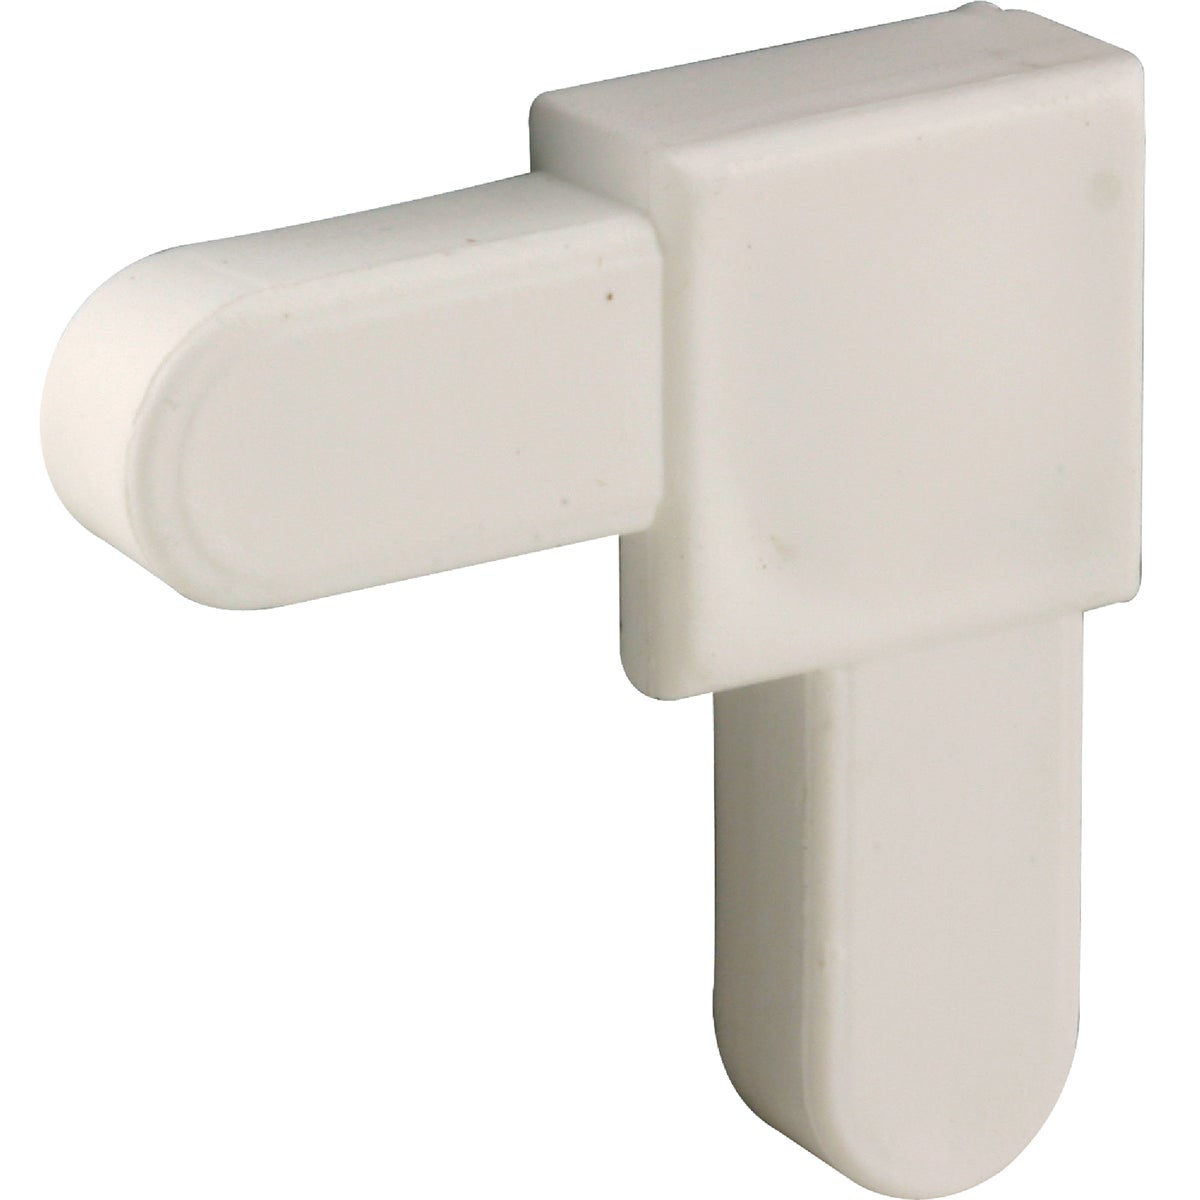 5/8X1/4 WHT FRAME CORNER - PL14336 by Prime Line Products